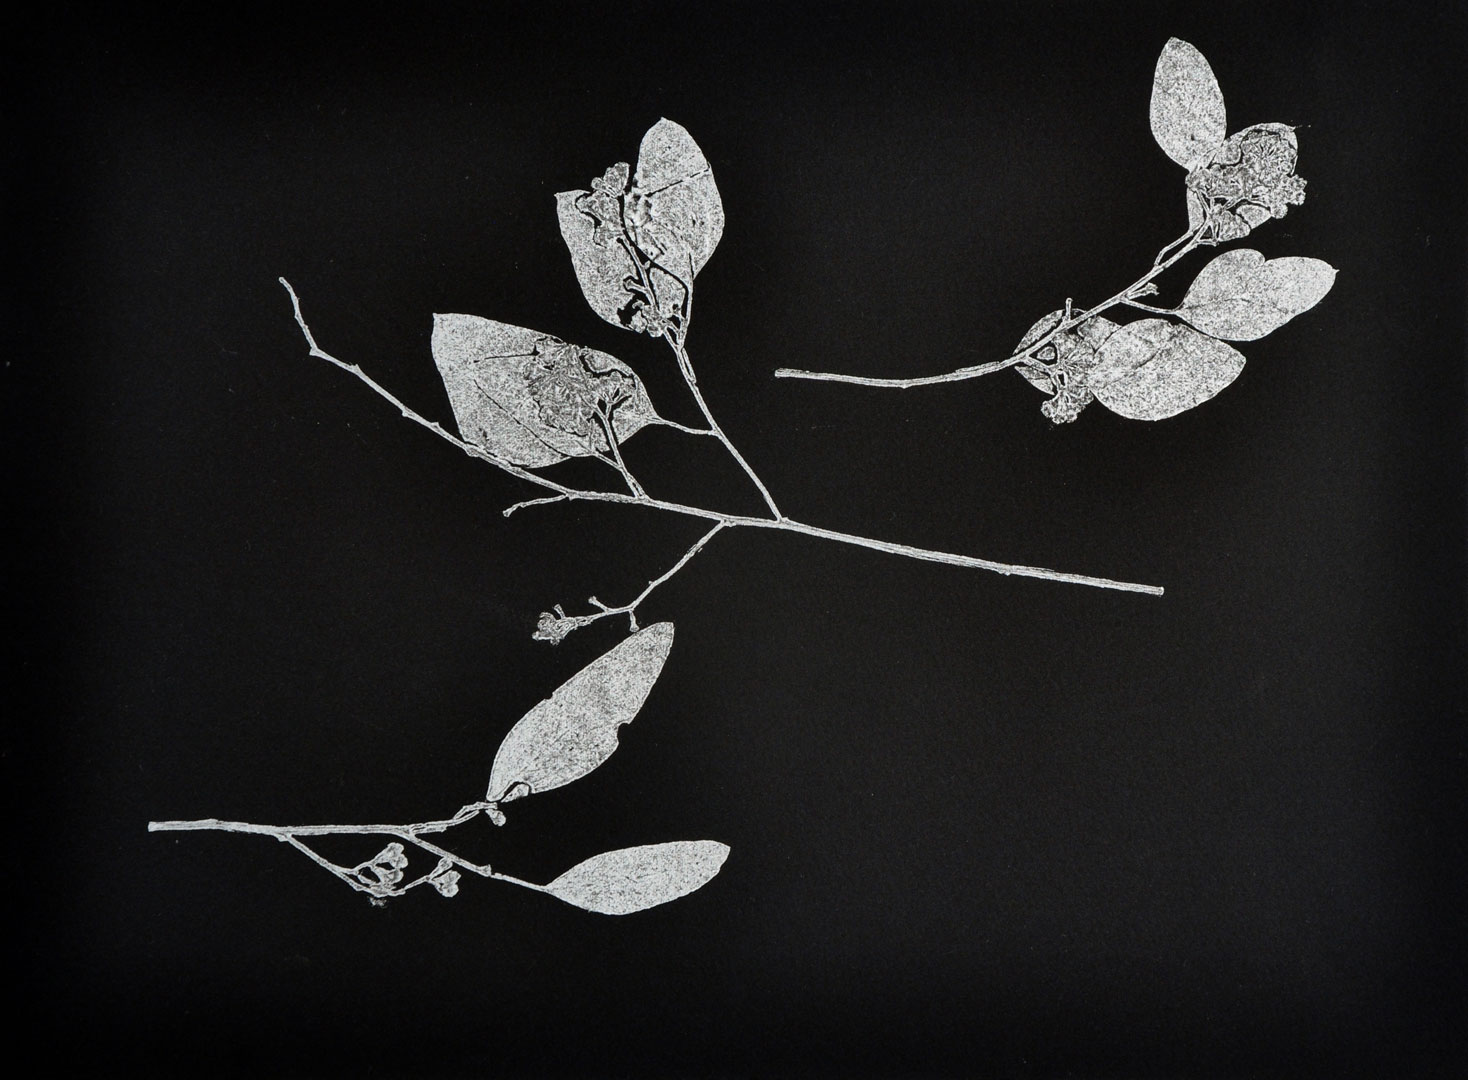 """Monotype, 2014, Christine Mauersberger dried and flattened seeded eucalyptus, silver ink, black somerset paper. 15"""" x 11"""""""